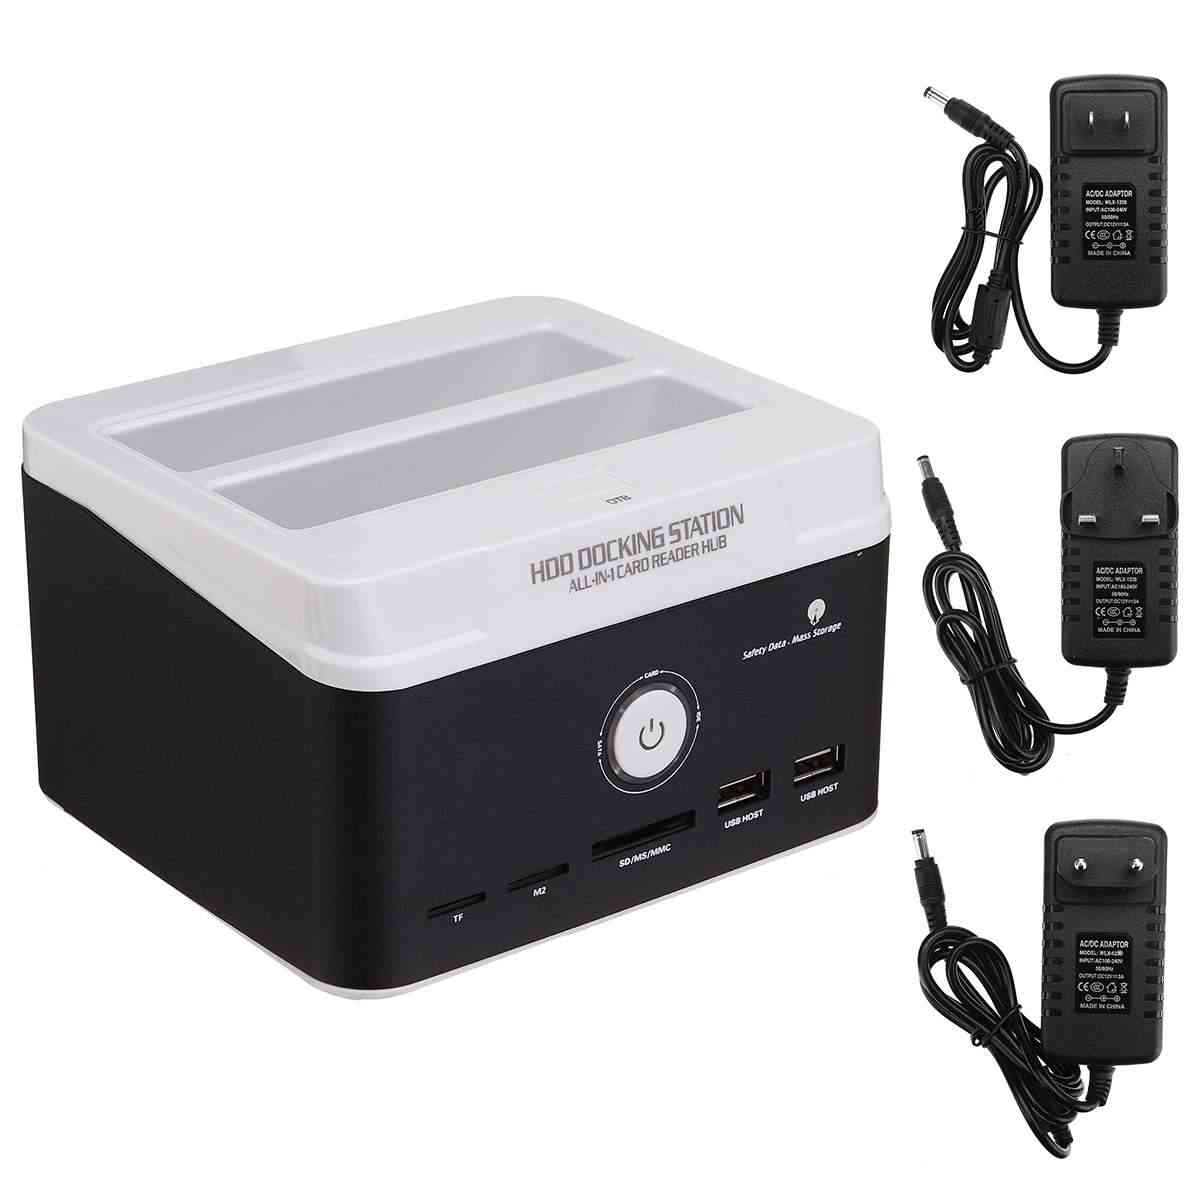 All In One Hdd Docking Station For 2.5/3.5 Inch Ide/sata Internal Hard Disk Drive